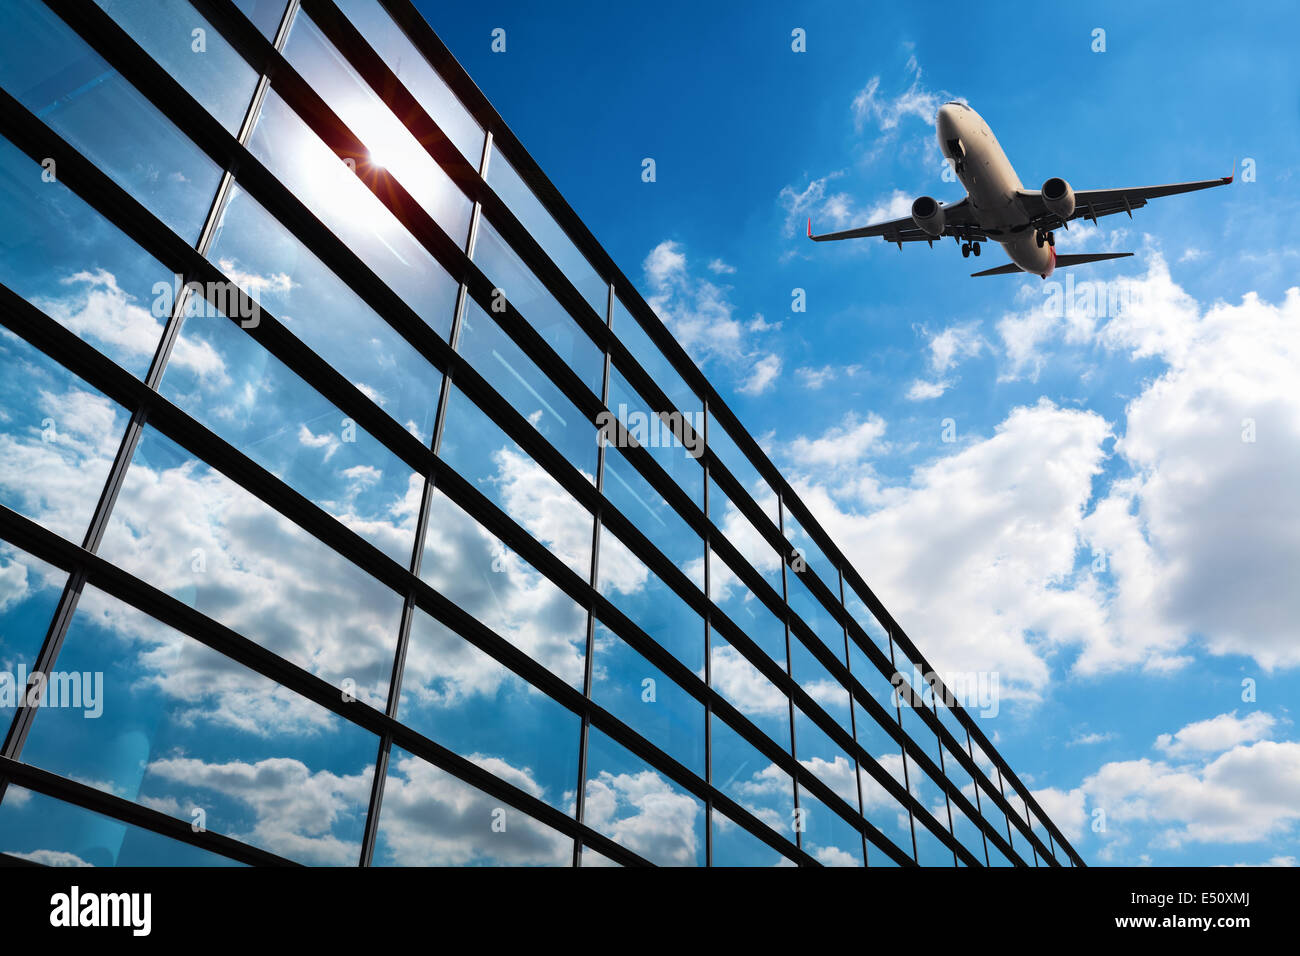 glass curtain wall and aircraft Stock Photo